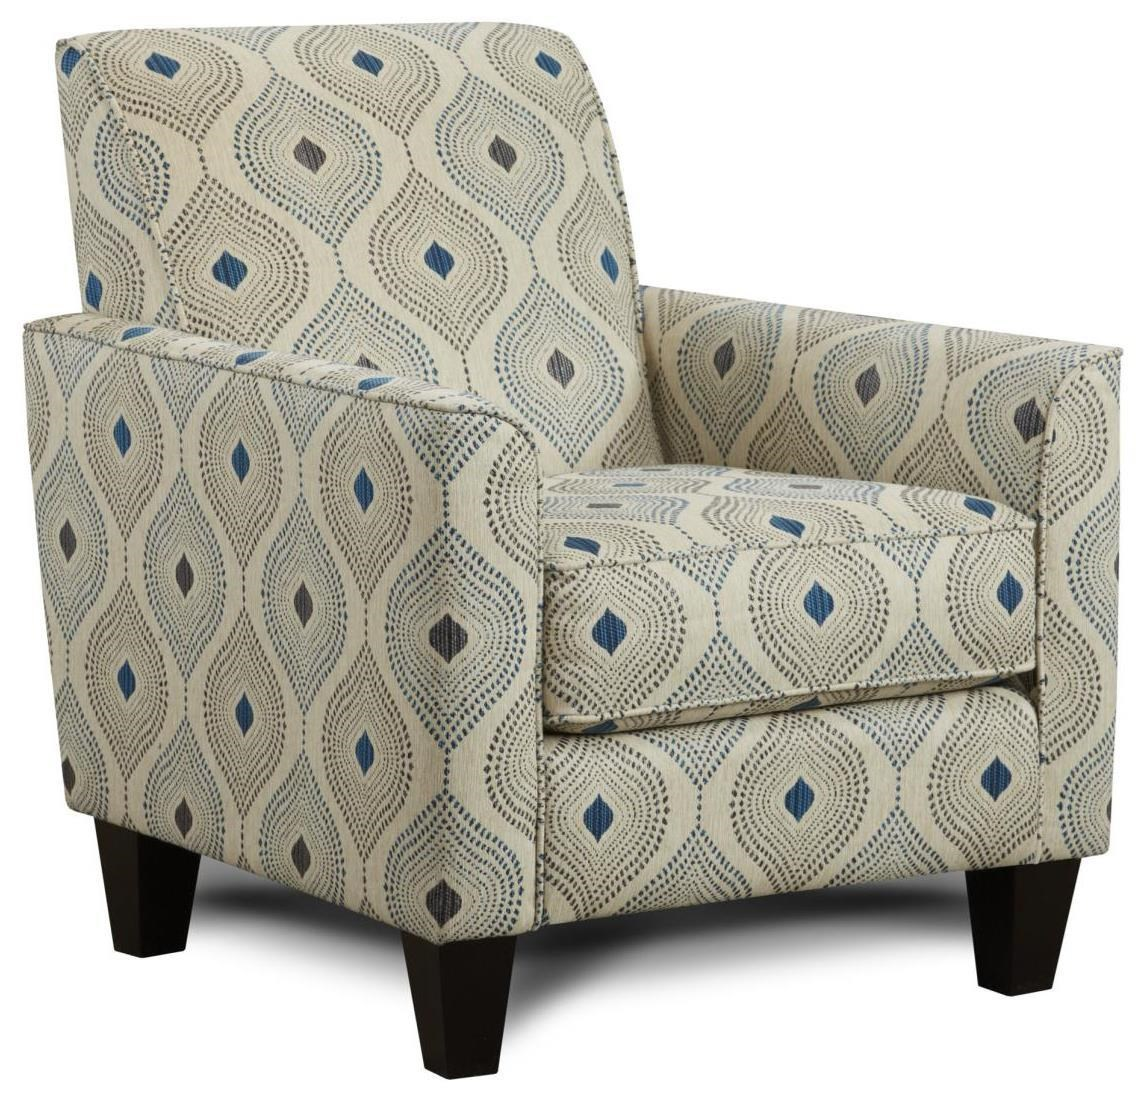 Mirabelle Accent Chair by Fusion Furniture at Crowley Furniture & Mattress